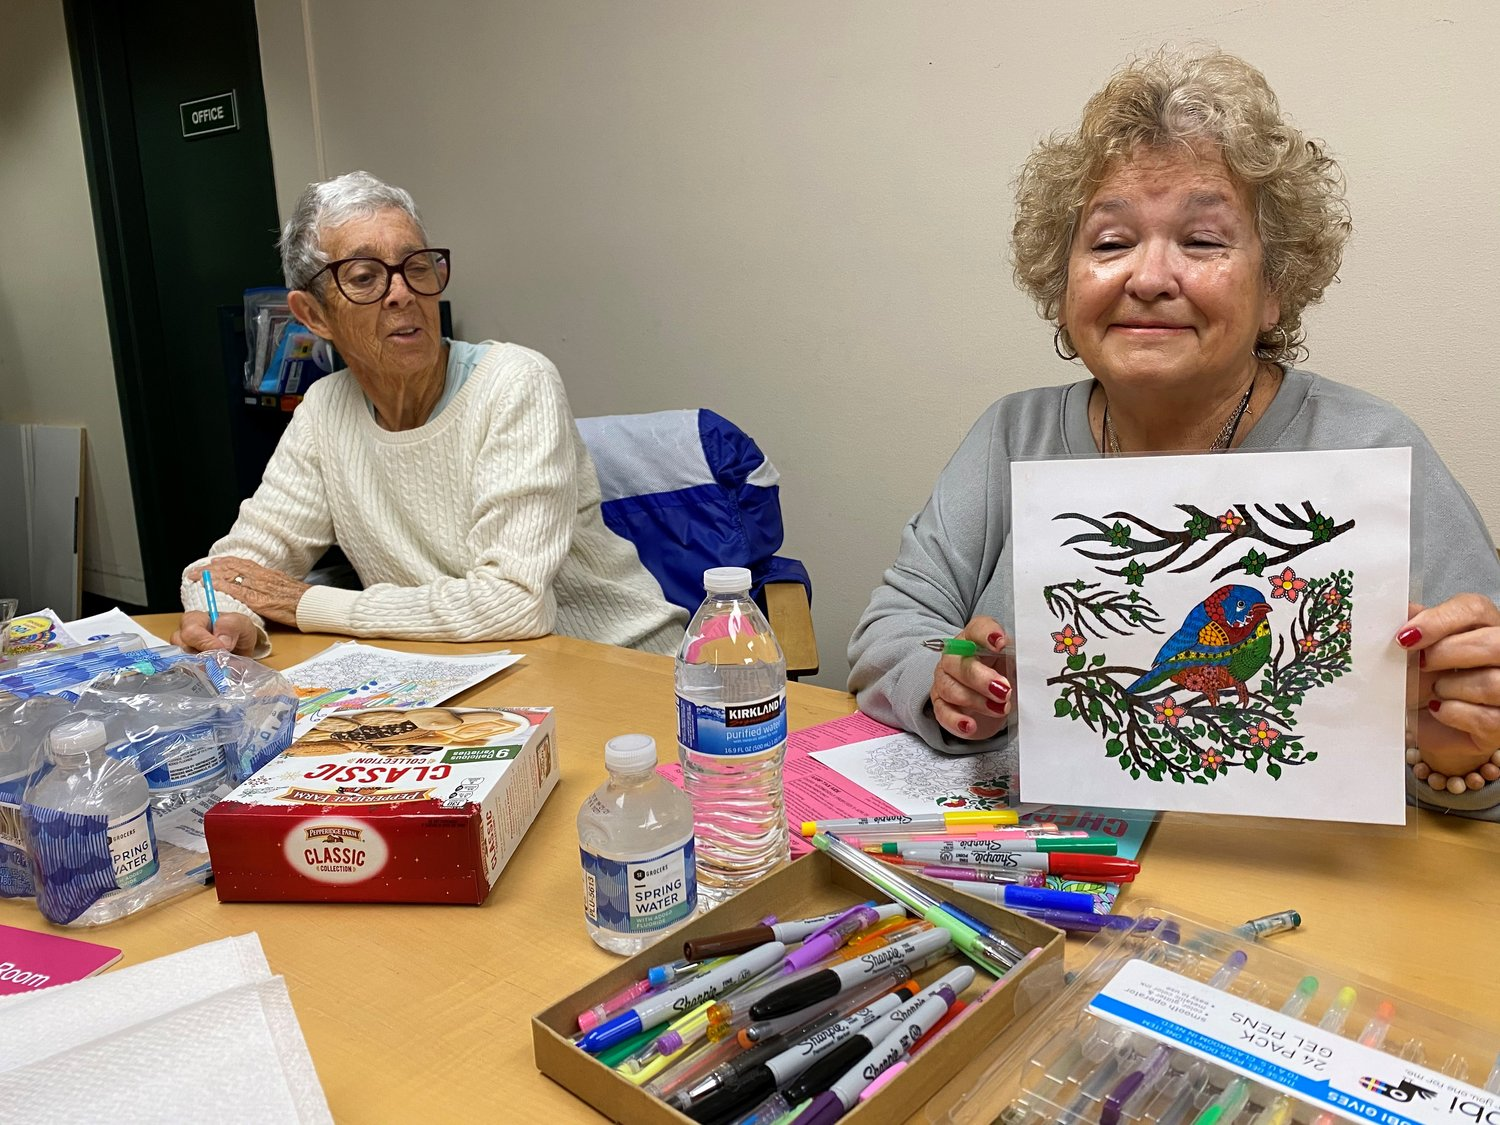 Gloria Montesino (right) holds up a picture she has finished as Phyllis Gallagher looks on.